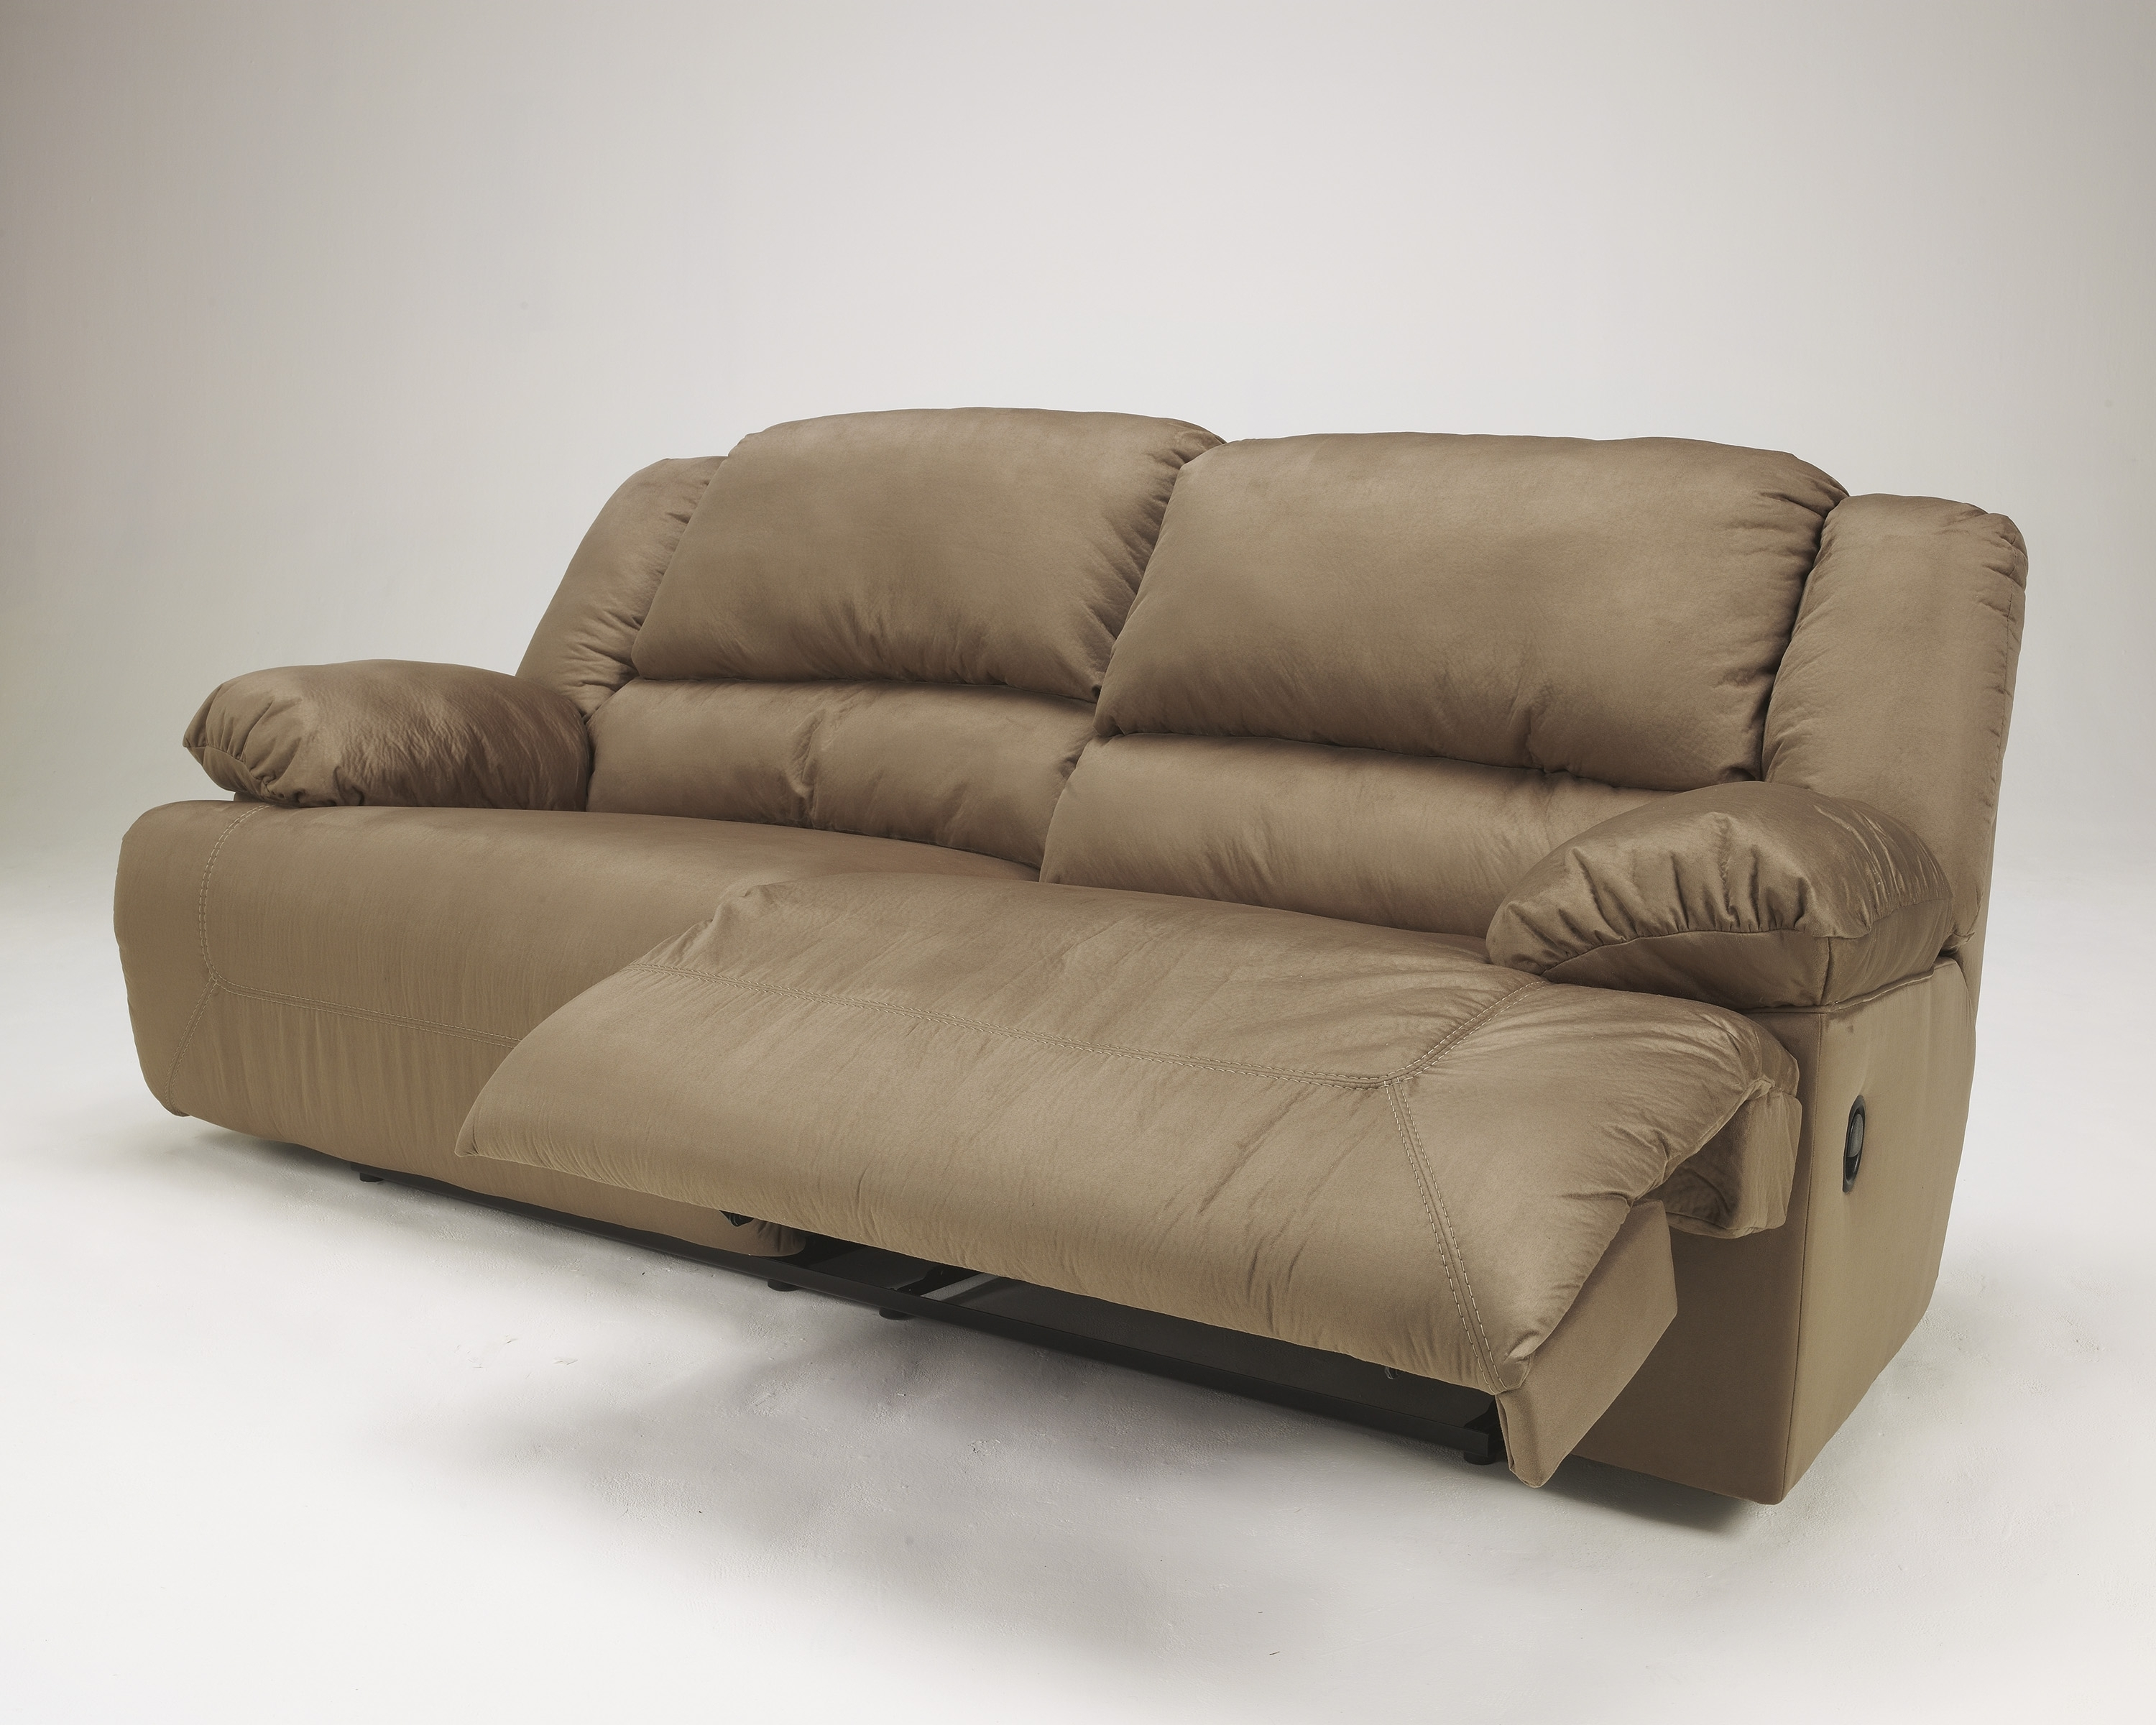 Ashley Furniture Hogan Mocha Two Seat Reclining Sofa View 8 Of 20